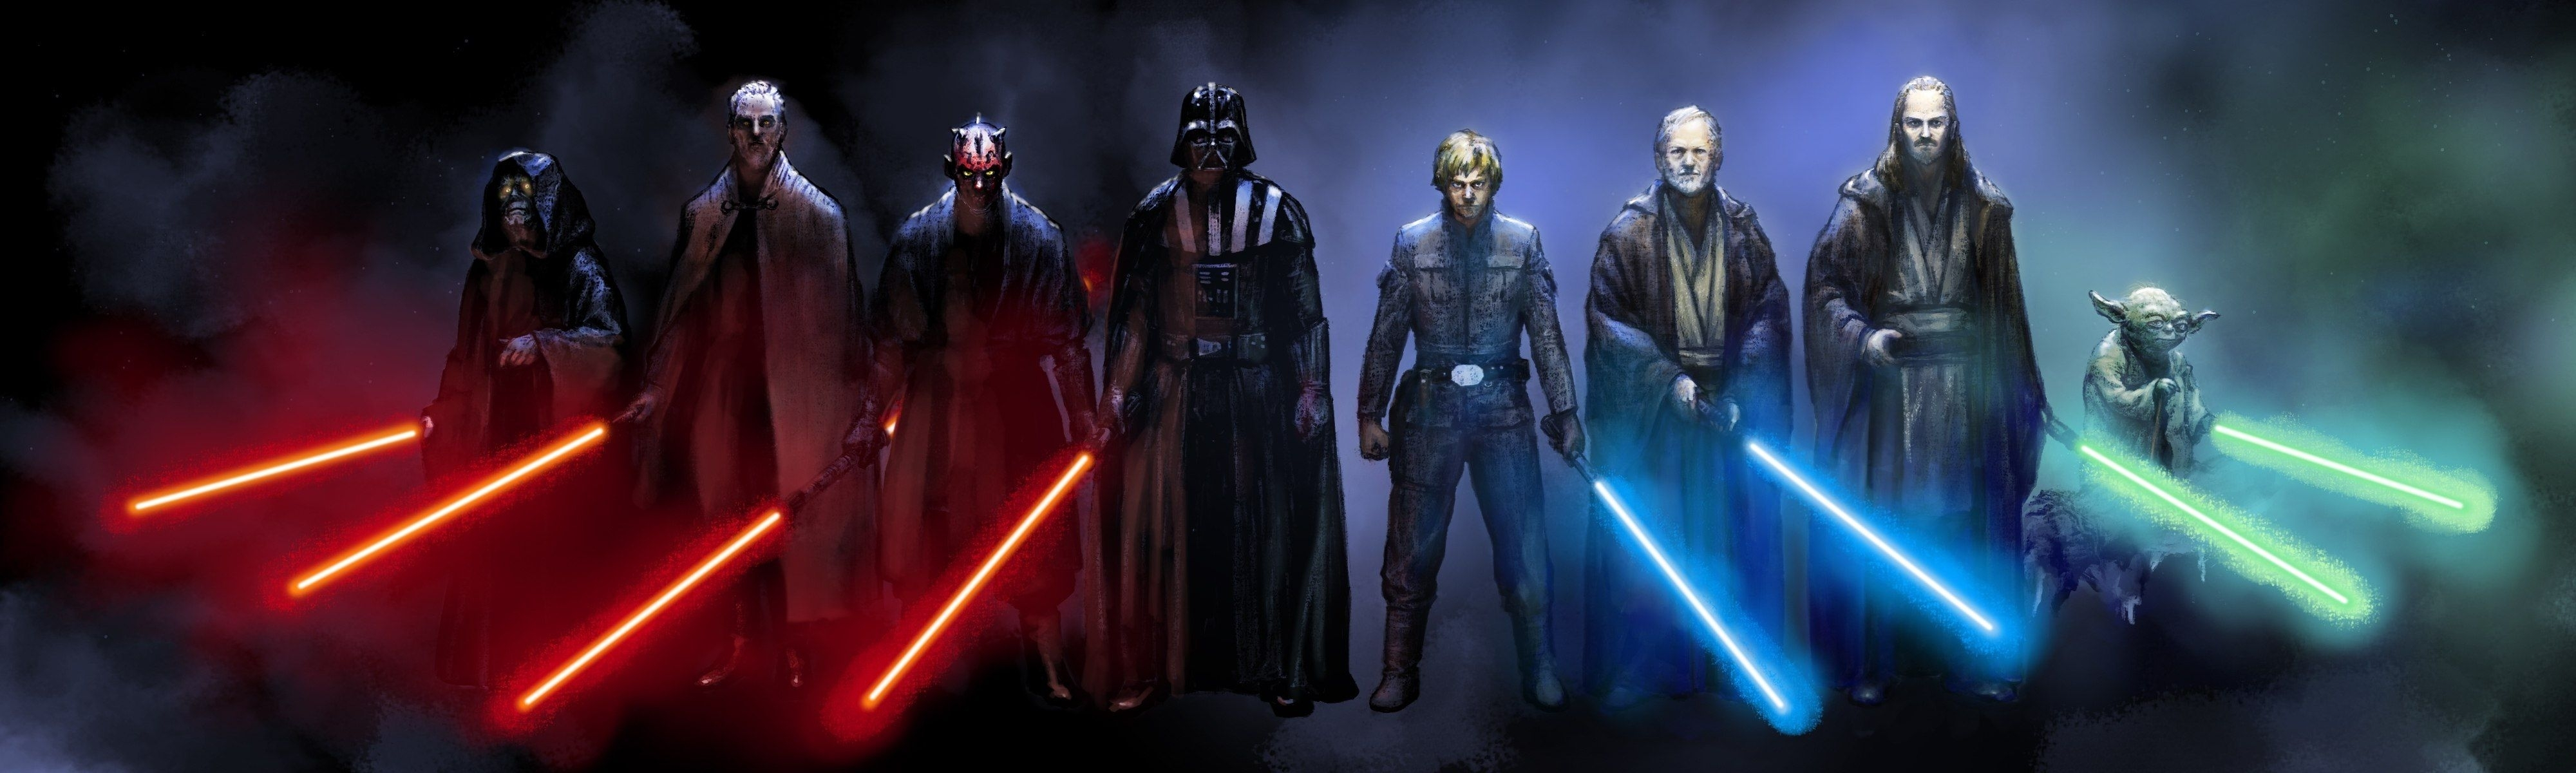 jedi vs sith | star wars | pinterest | sith and comic